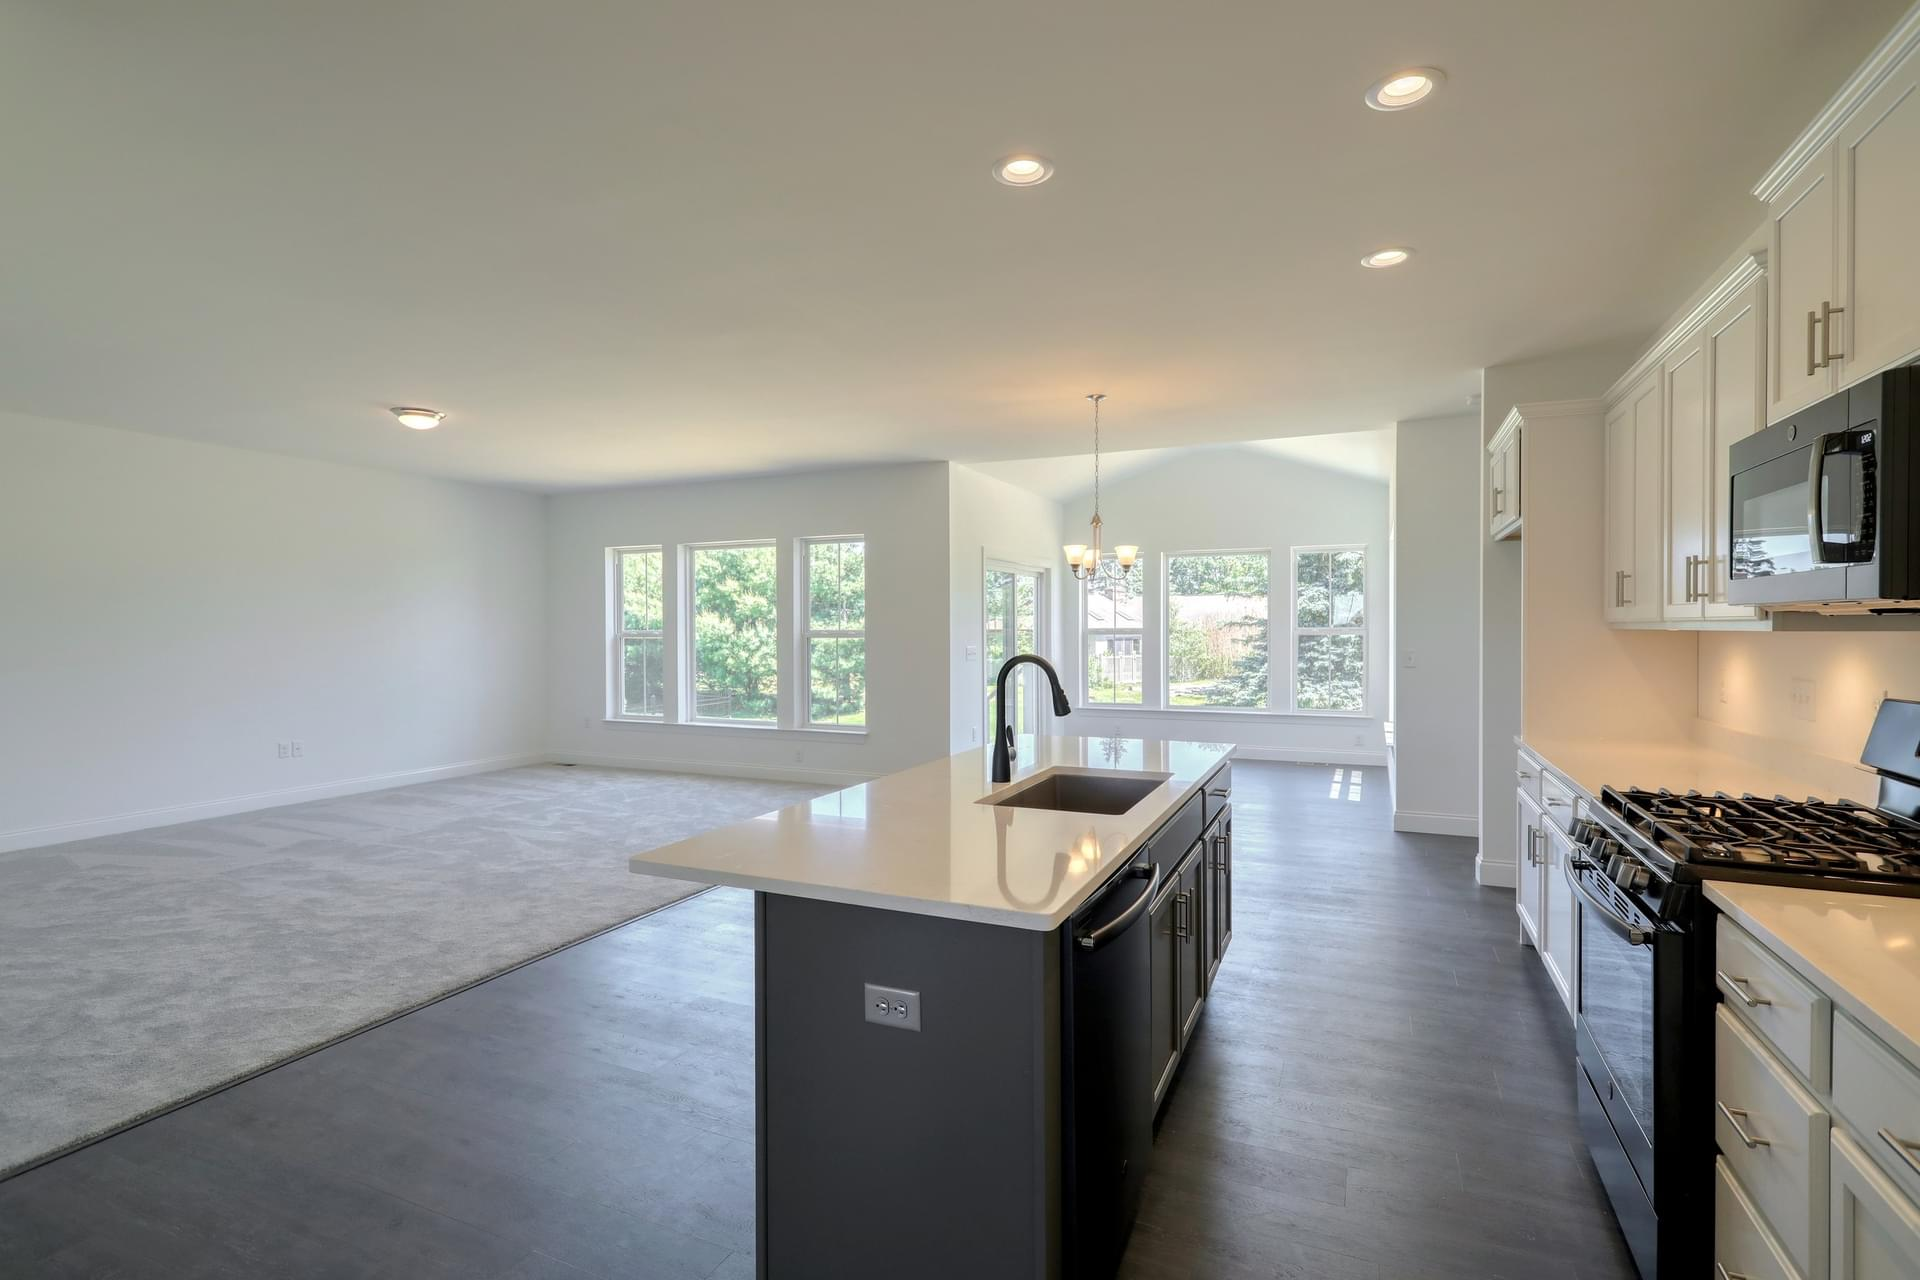 3br New Home in Sinking Spring, PA